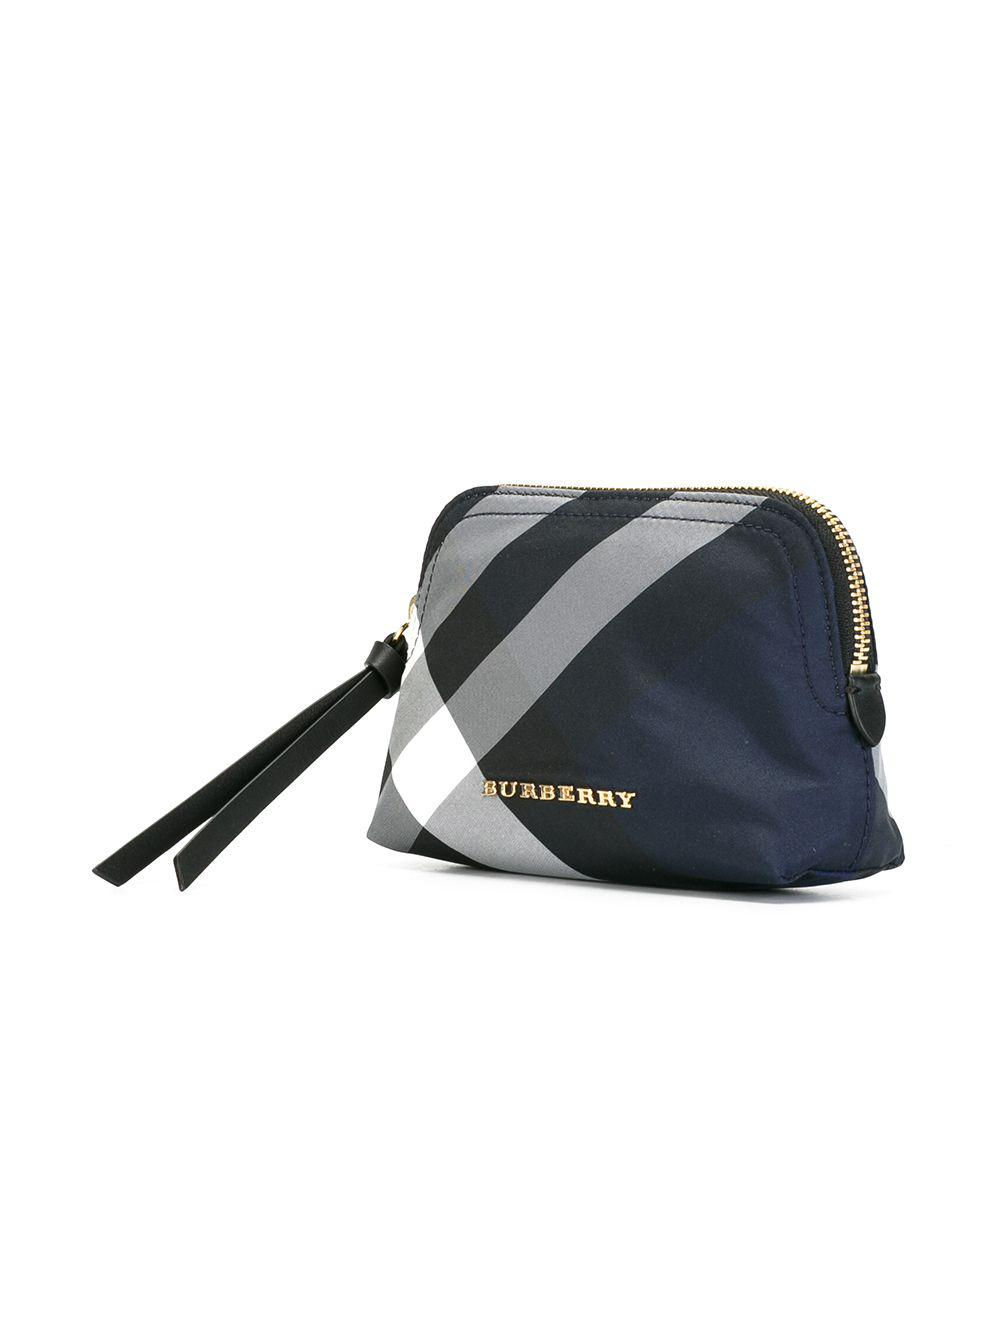 Lyst burberry embroidered polyester beauty case jpg 1000x1334 Burberry  beauty case 9fd03a0f2ebe4